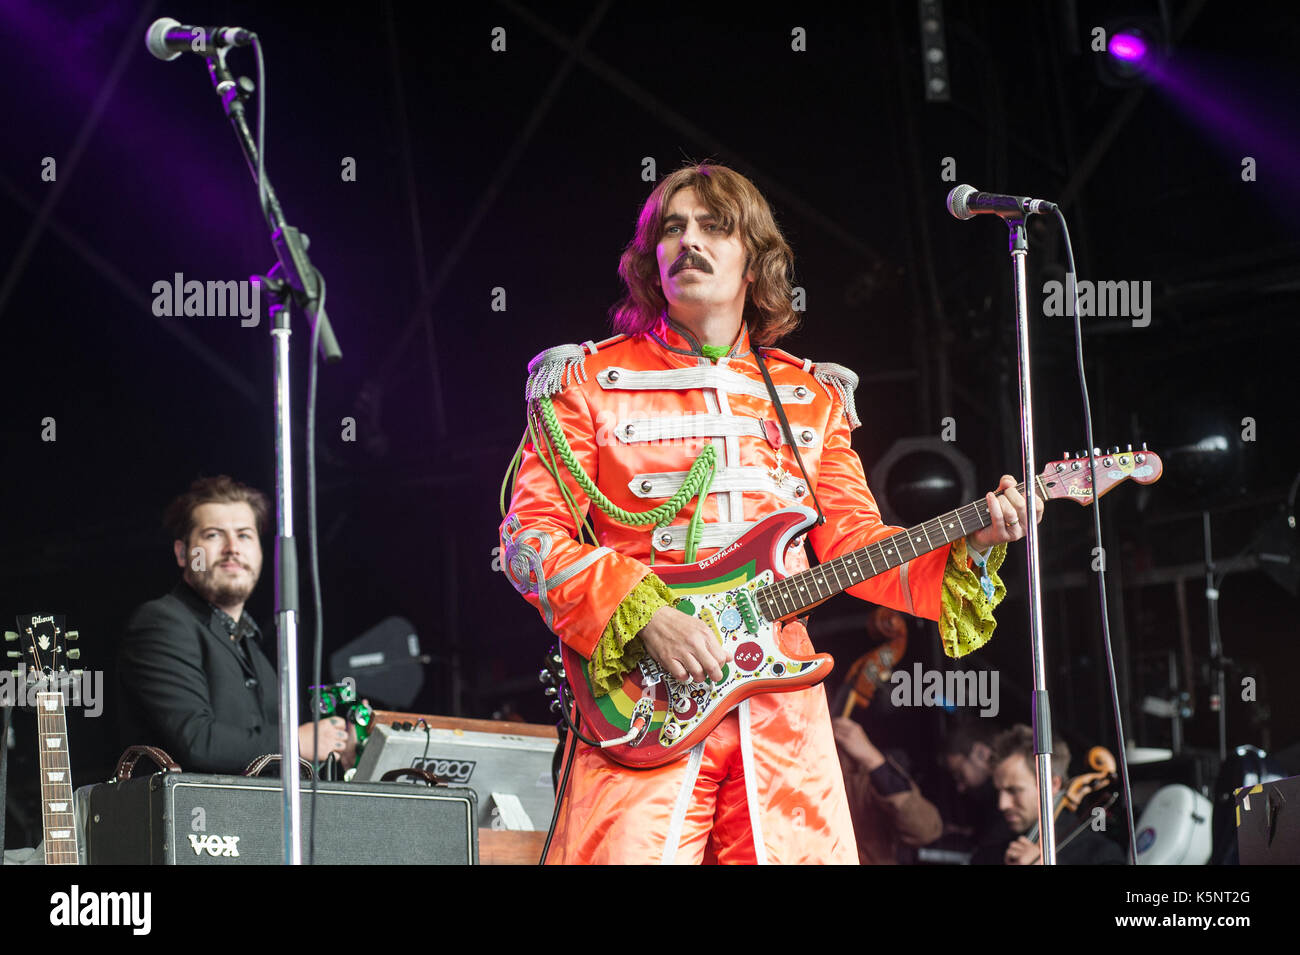 Portmeirion, Wales, UK. 10th September, 2017. The Royal Liverpool Philharmonic Orchestra and The Bootleg Beatles play Festival No.6 Main Stage to celebrate 50th Anniversary of Sergeant Peppers Lonely Hearts Club Band album and the 'Summer of Love' 10th September 2017, Portmeirion, Wales, UK Credit: Ken Harrison/Alamy Live News - Stock Image